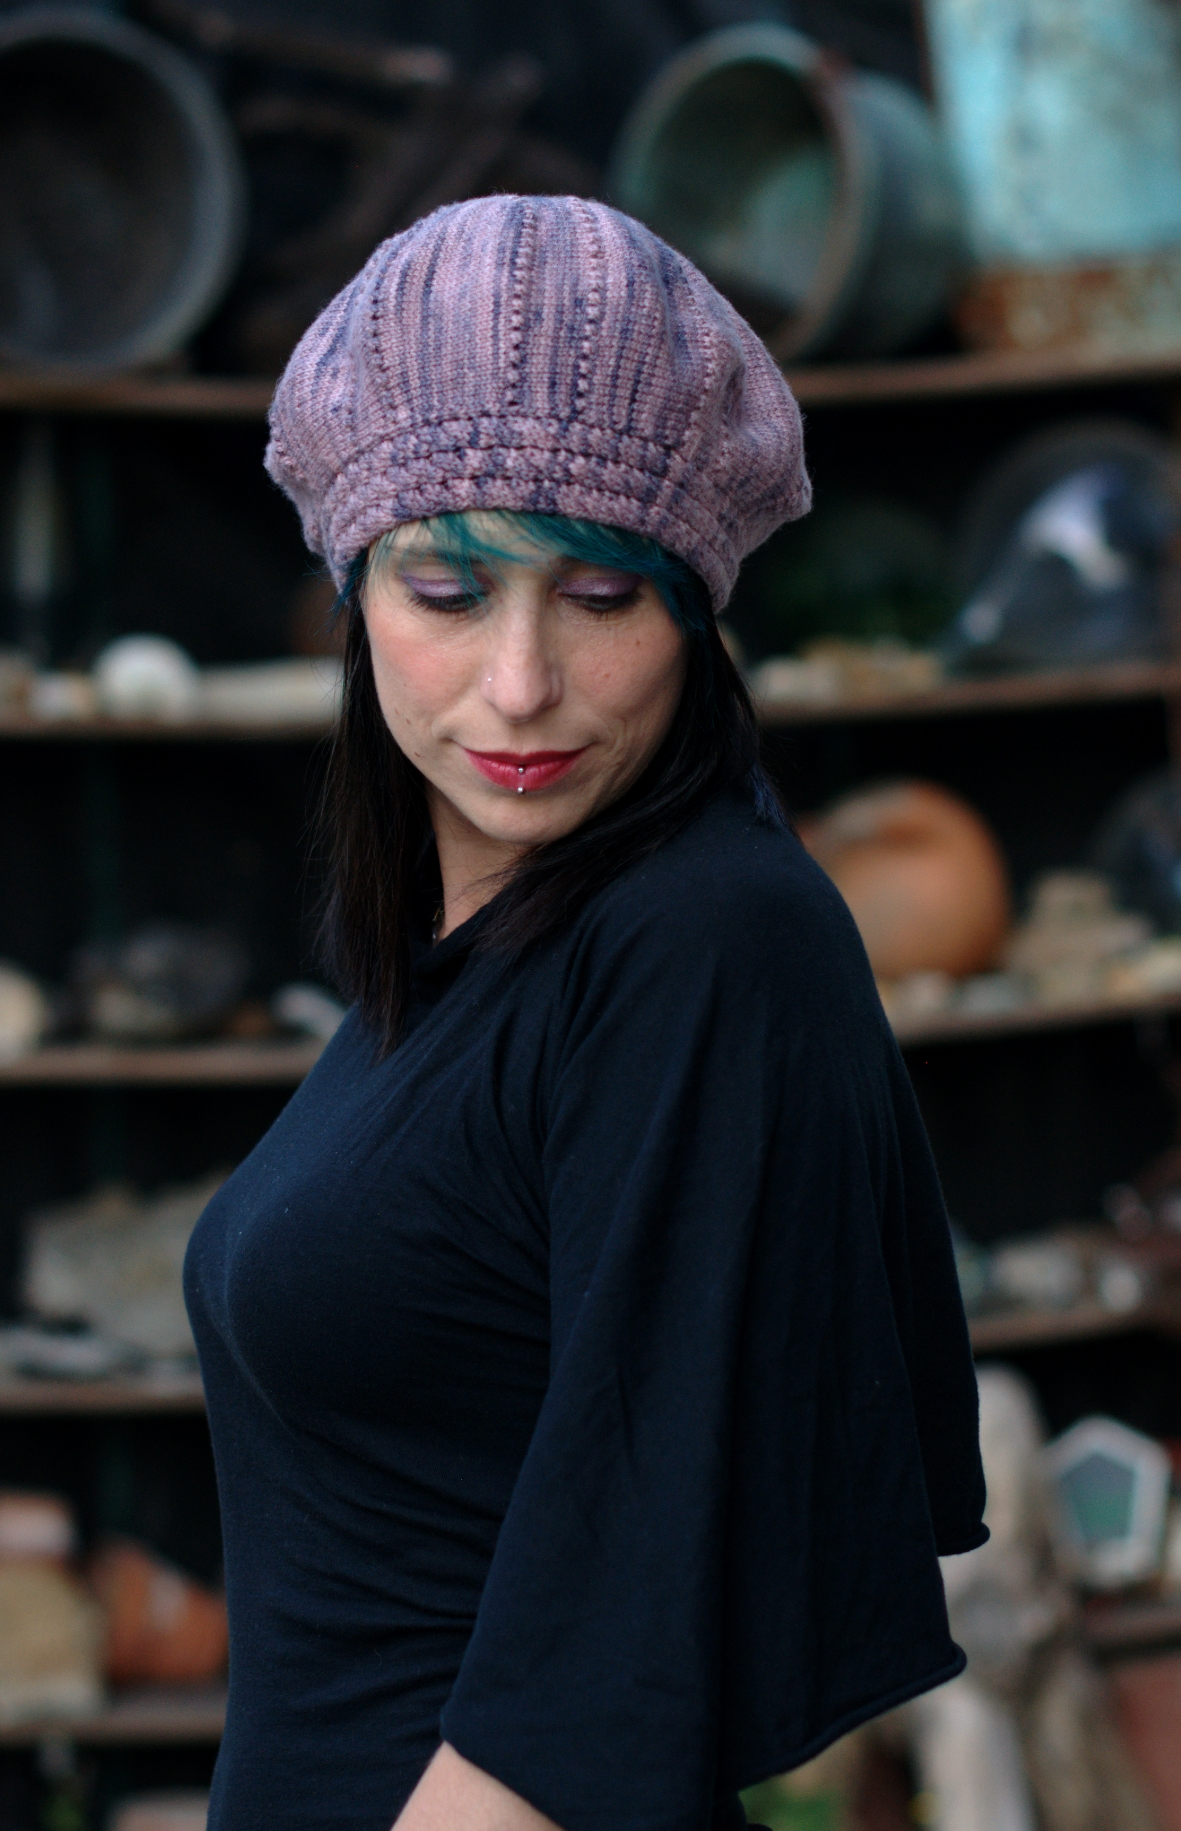 Arbacia sideways knit beret with cable and eyelet brim knitting pattern